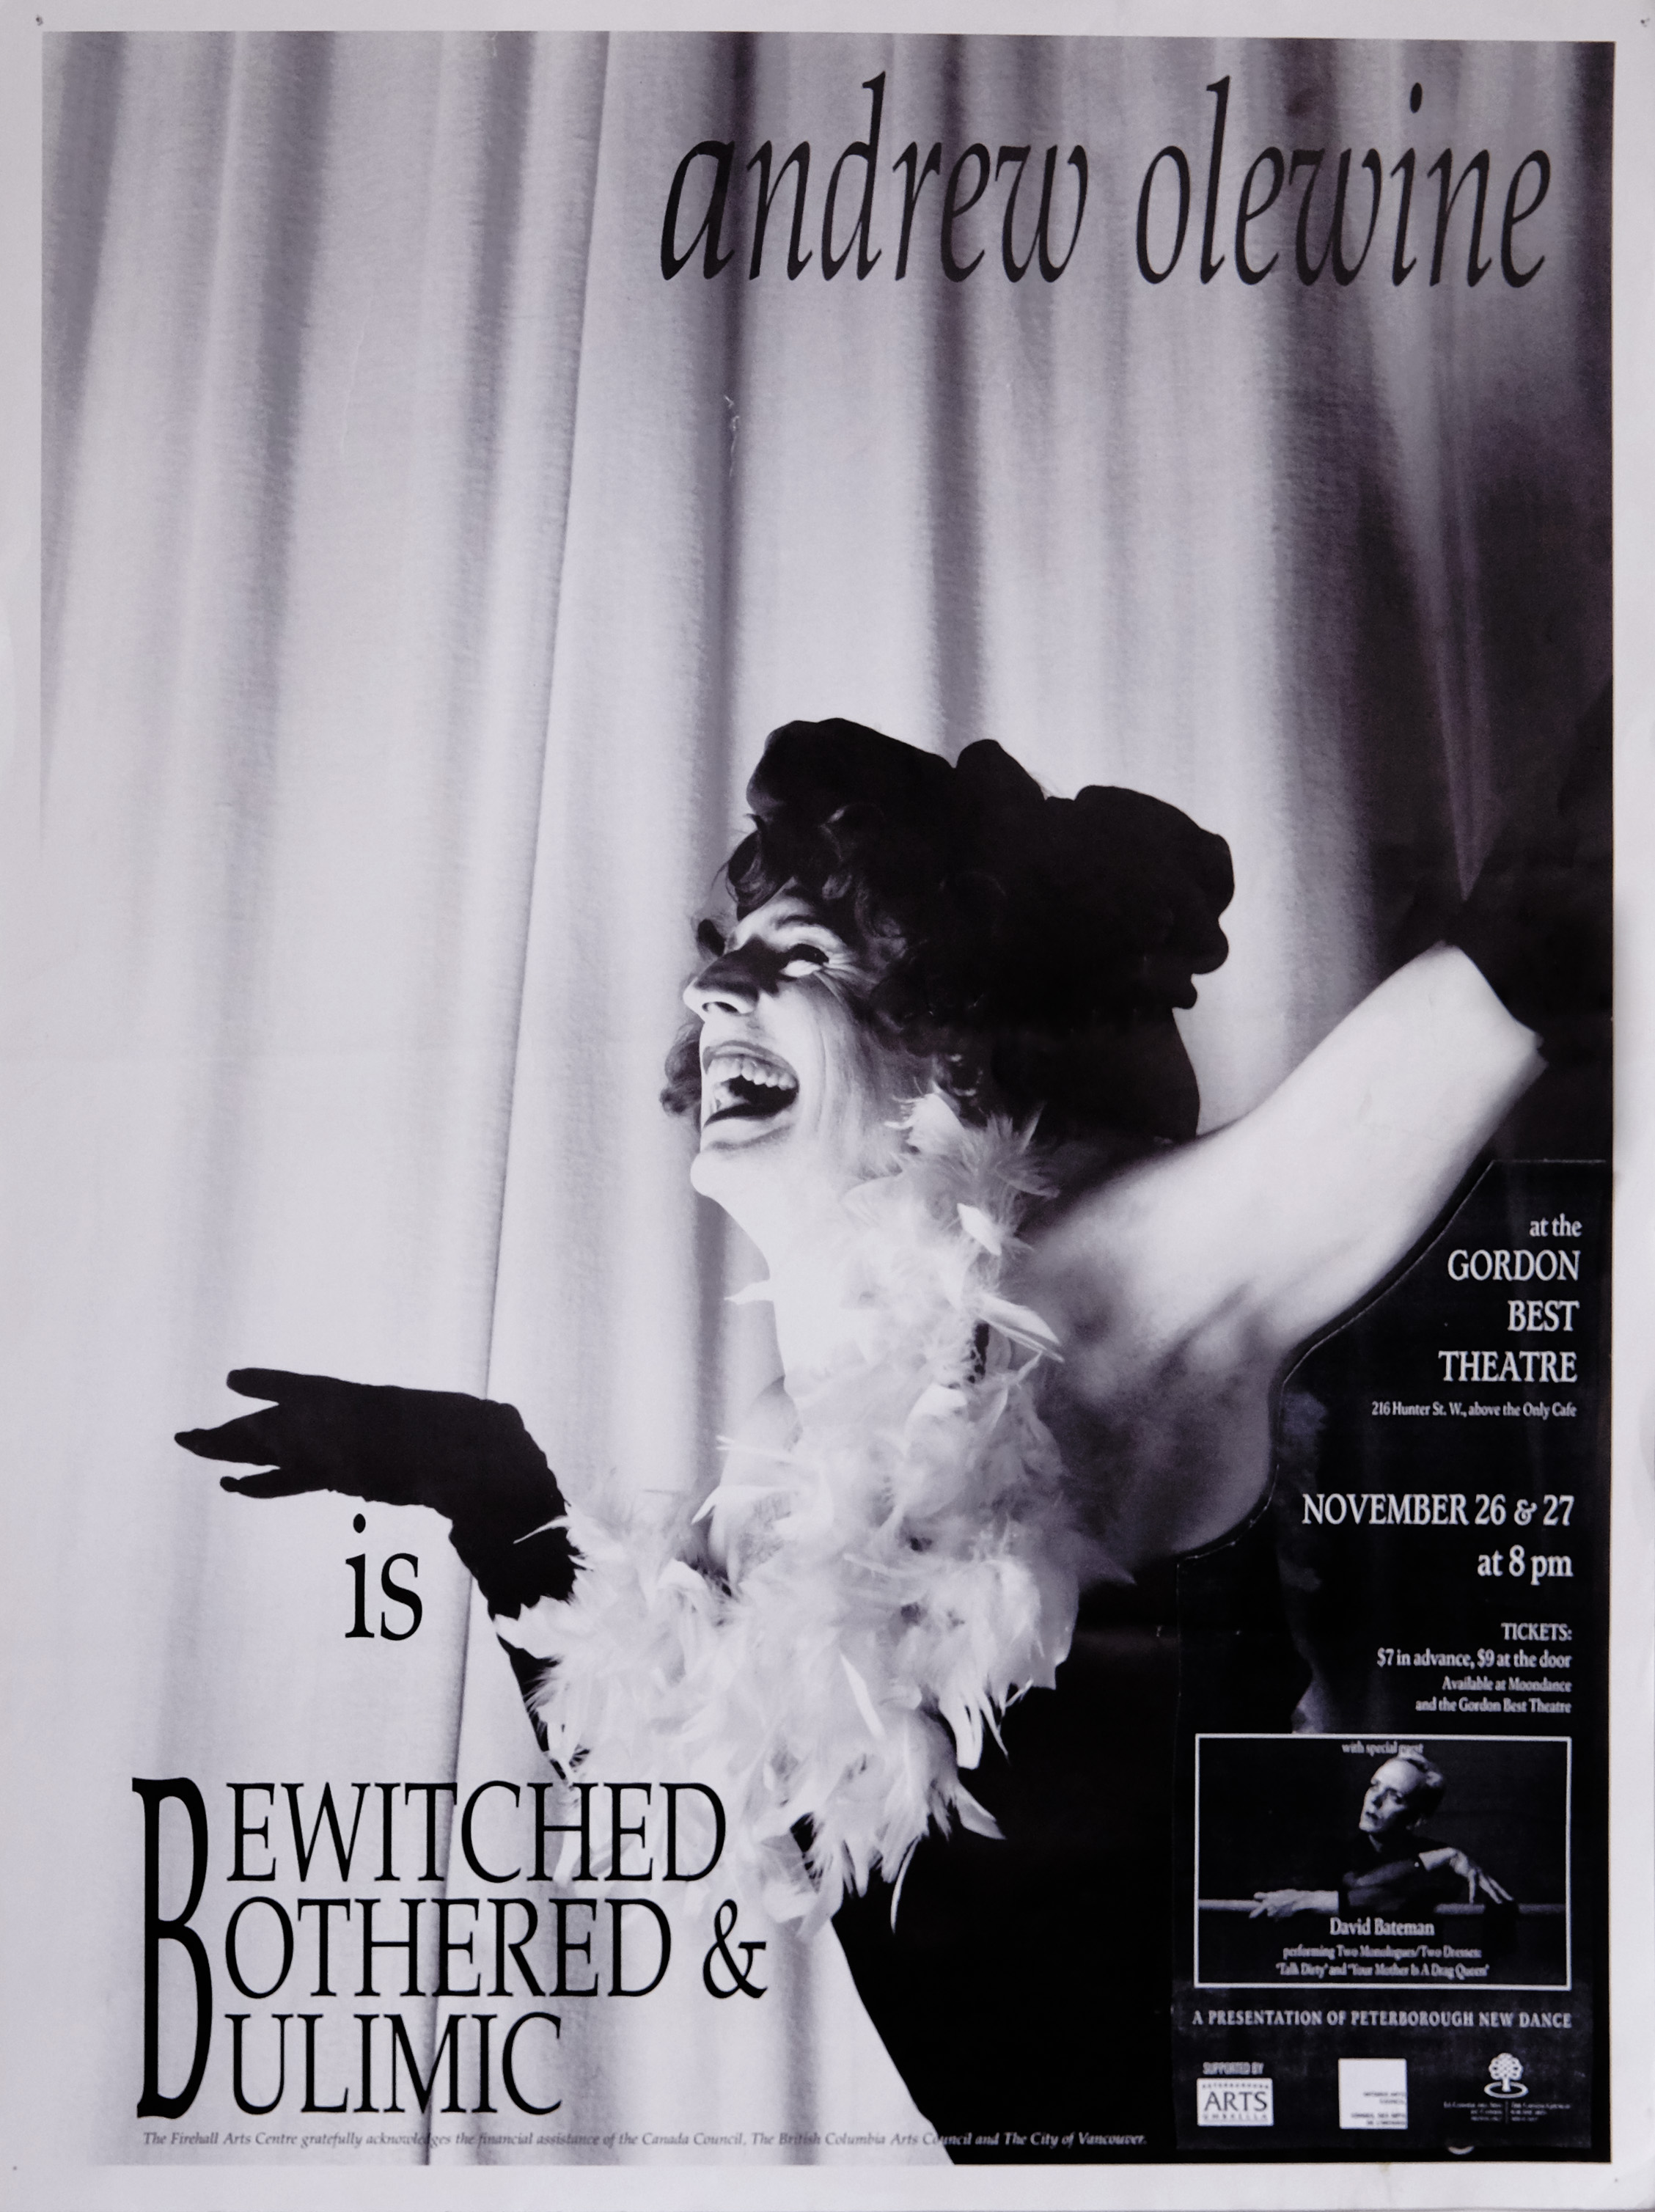 Andrew Olewine – Bewitched, Bothered and Bulimic With guest artist David Bateman Poster for Andrew Olewine in the photo.